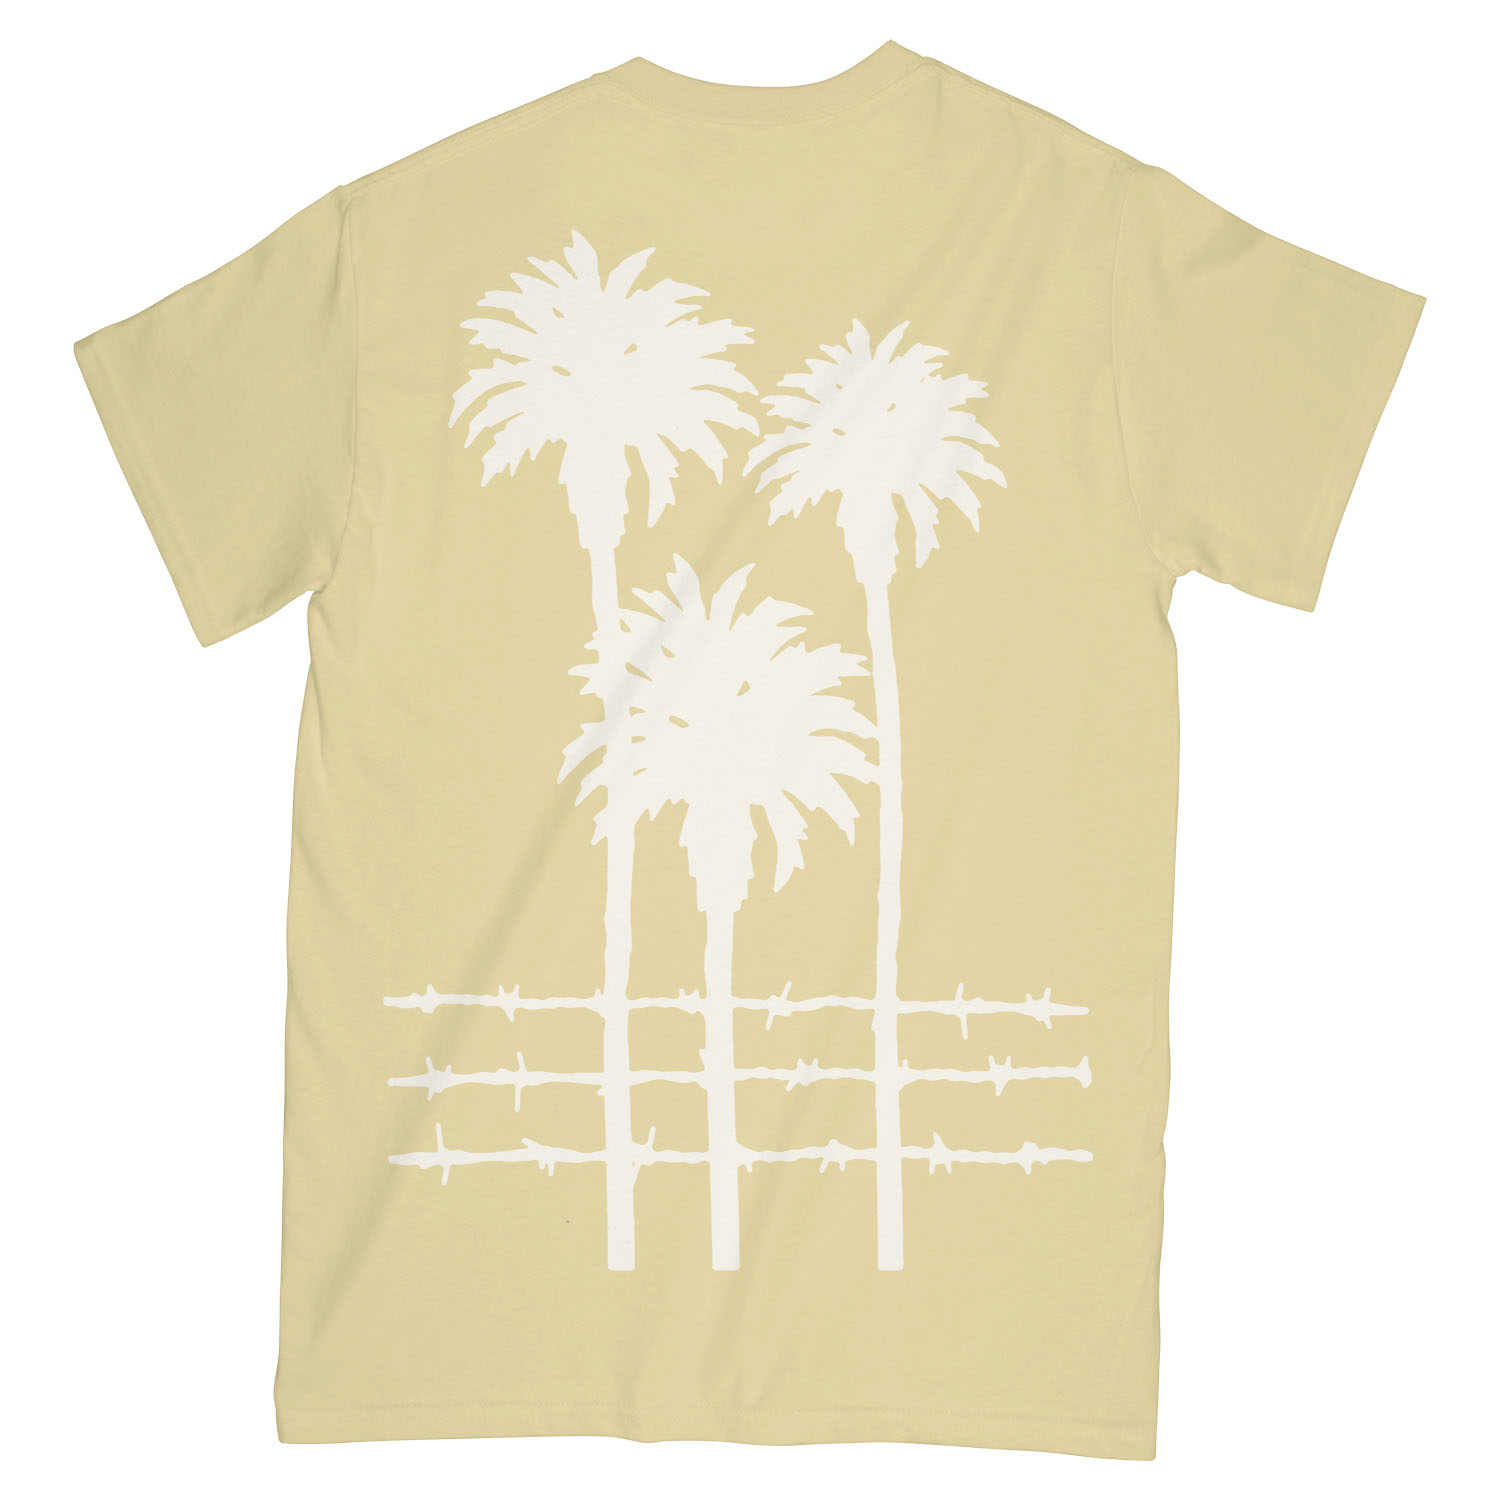 S_CITY_PALMS-SS_01B.jpg